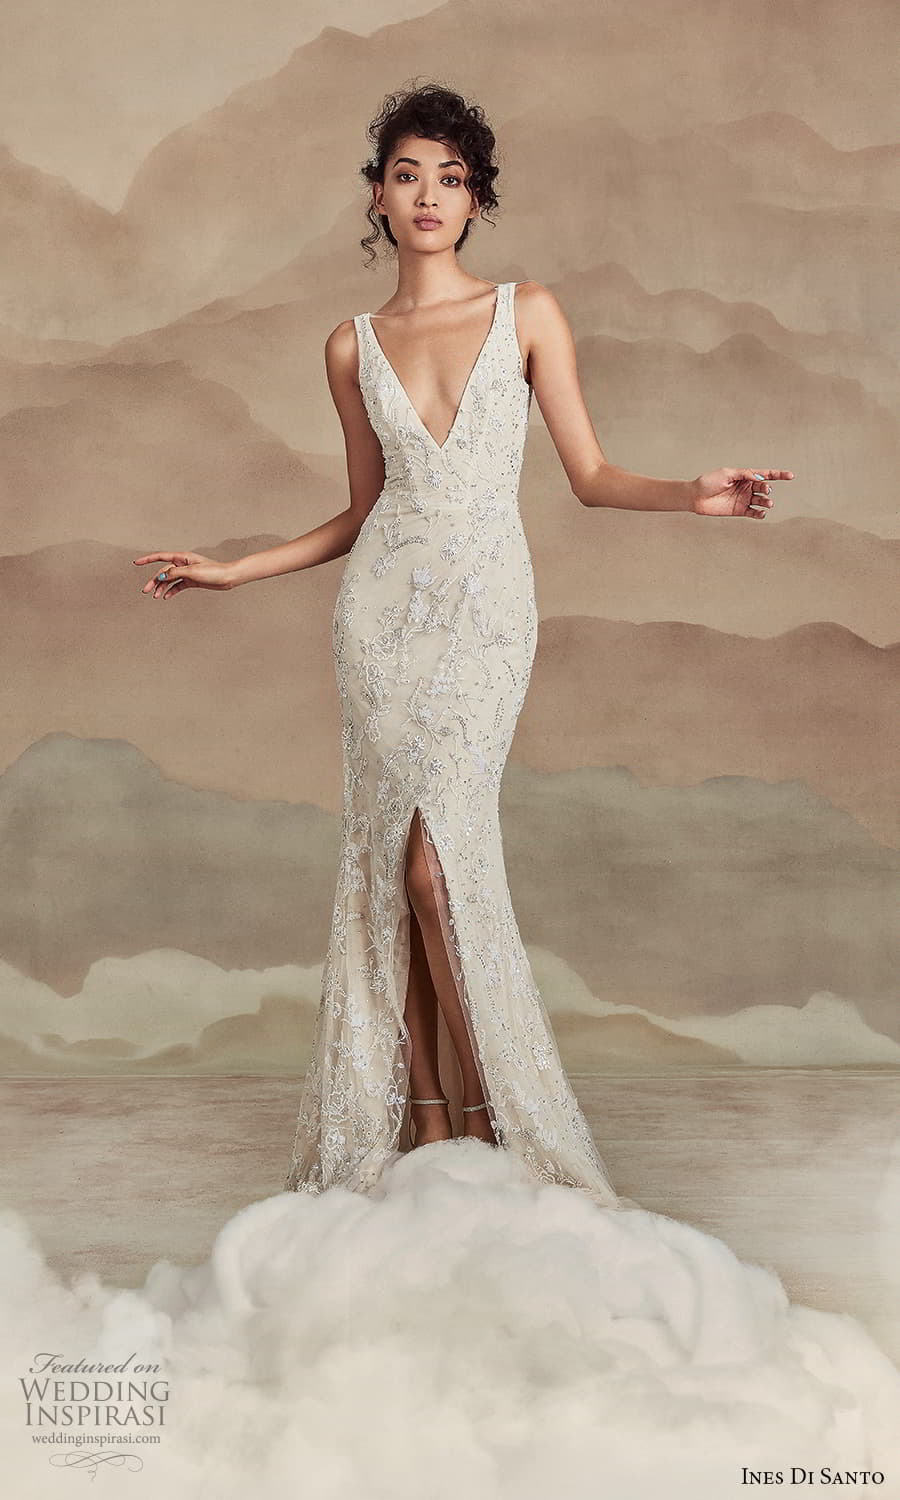 ines di santo spring 2022 bridal sleeveless straps v neckline fully embellished sheath wedding dres slit skirt (4) mv